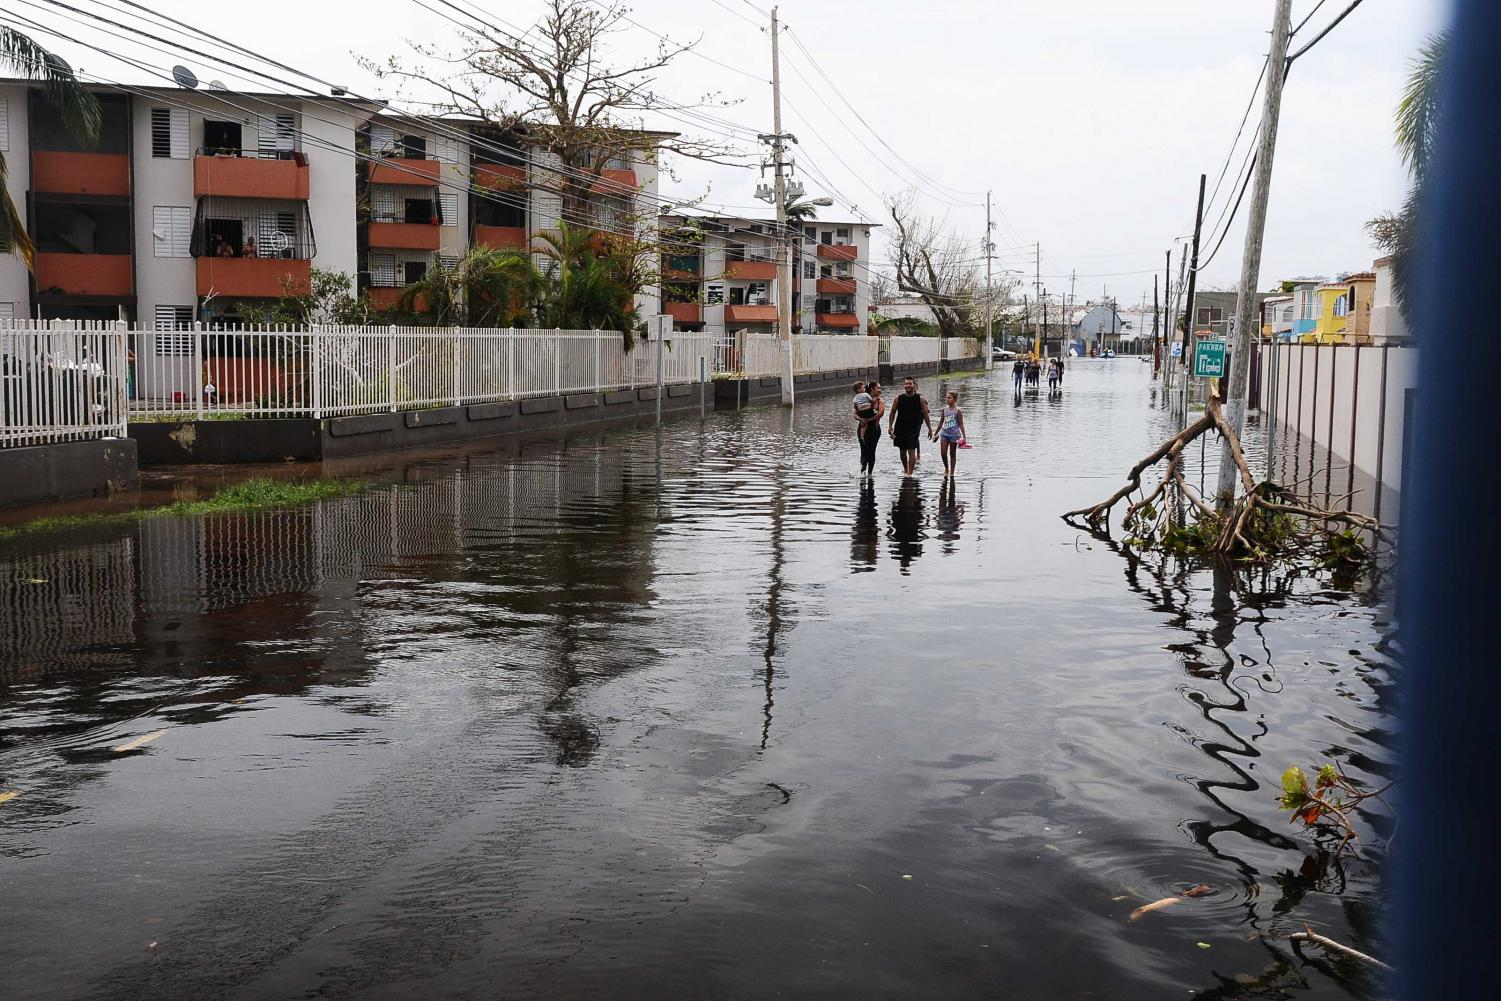 A family walks down the flooded streets of San Juan, Puerto Rico after Hurricane Maria. THE DEPARTMENT OF DEFENSE